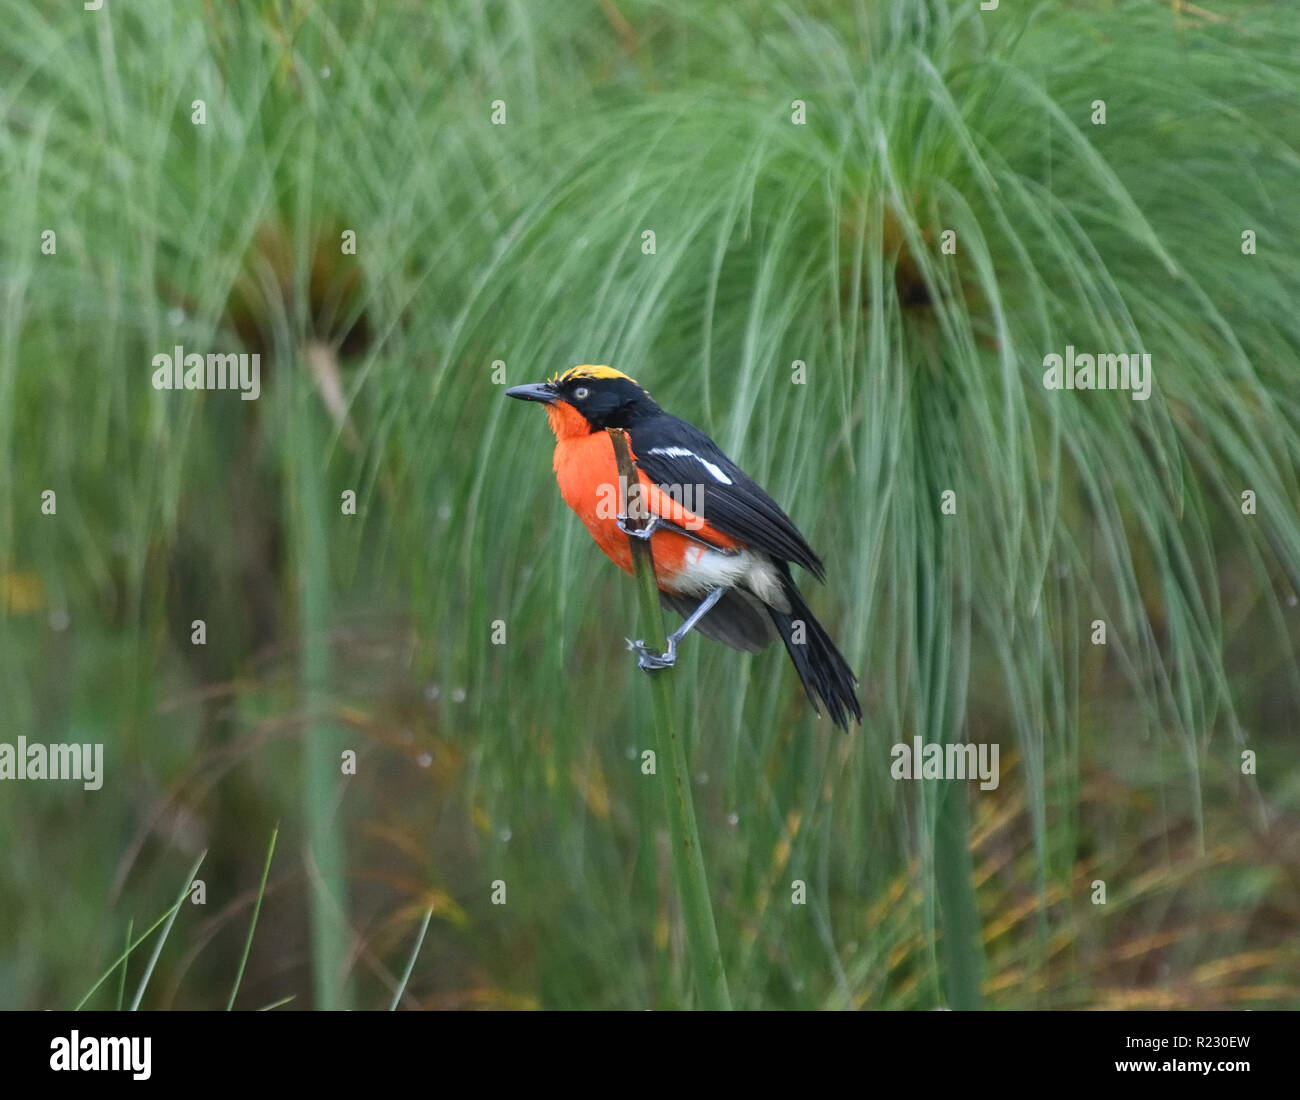 A near-threatened papyrus gonolek (Laniarius mufumbiri) perches on a papyrus stem in its usual habitat of a papyrus swamp. Queen Elizabeth National Pa - Stock Image